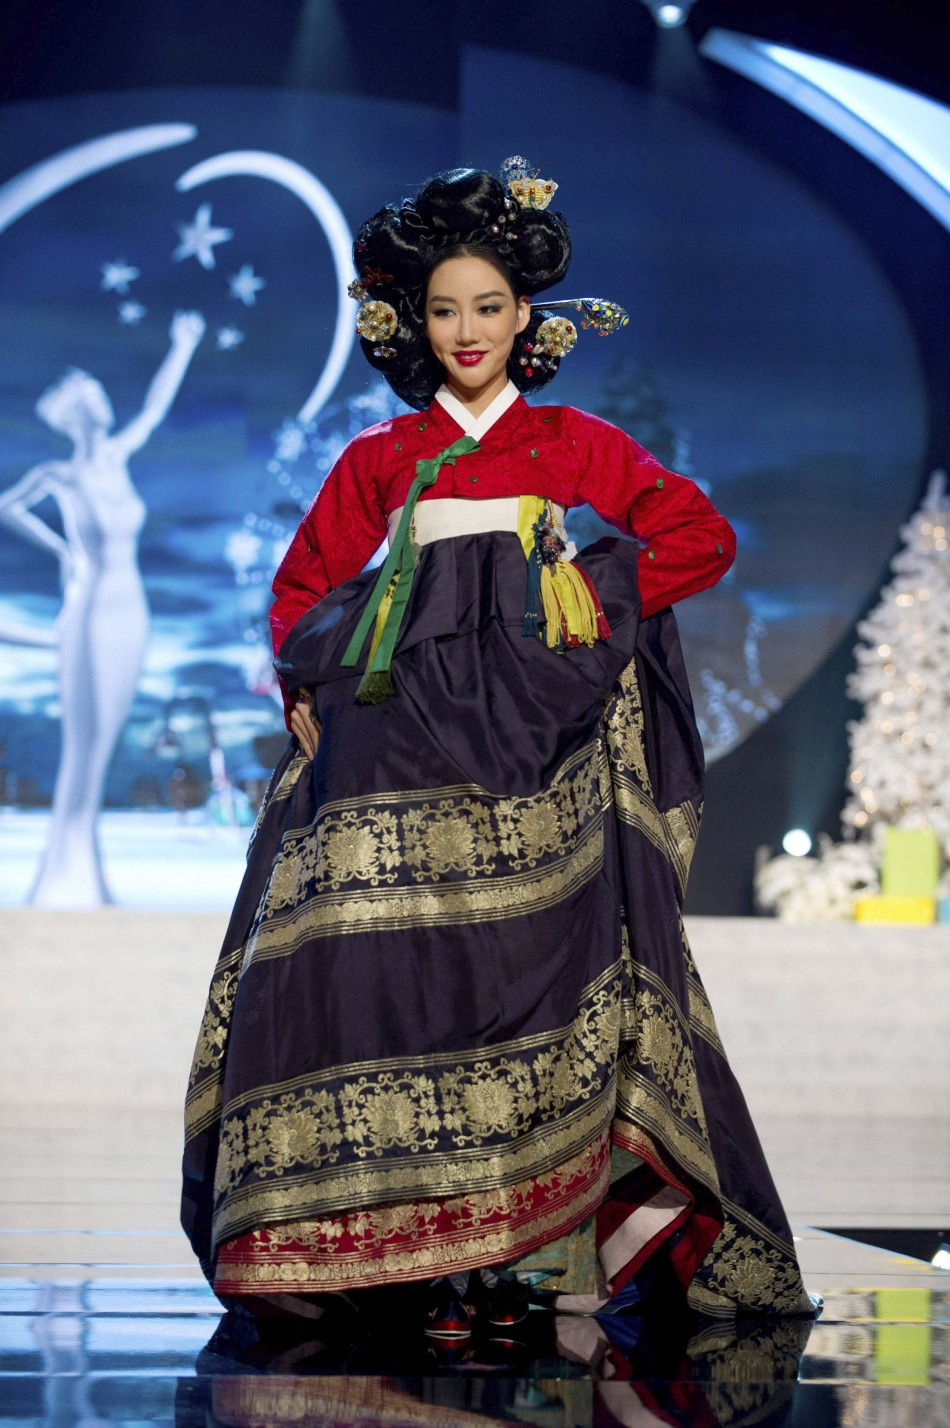 Miss Korea Sung-hye Lee on stage at the 2012 Miss Universe National Costume Show at PH Live in Las Vegas